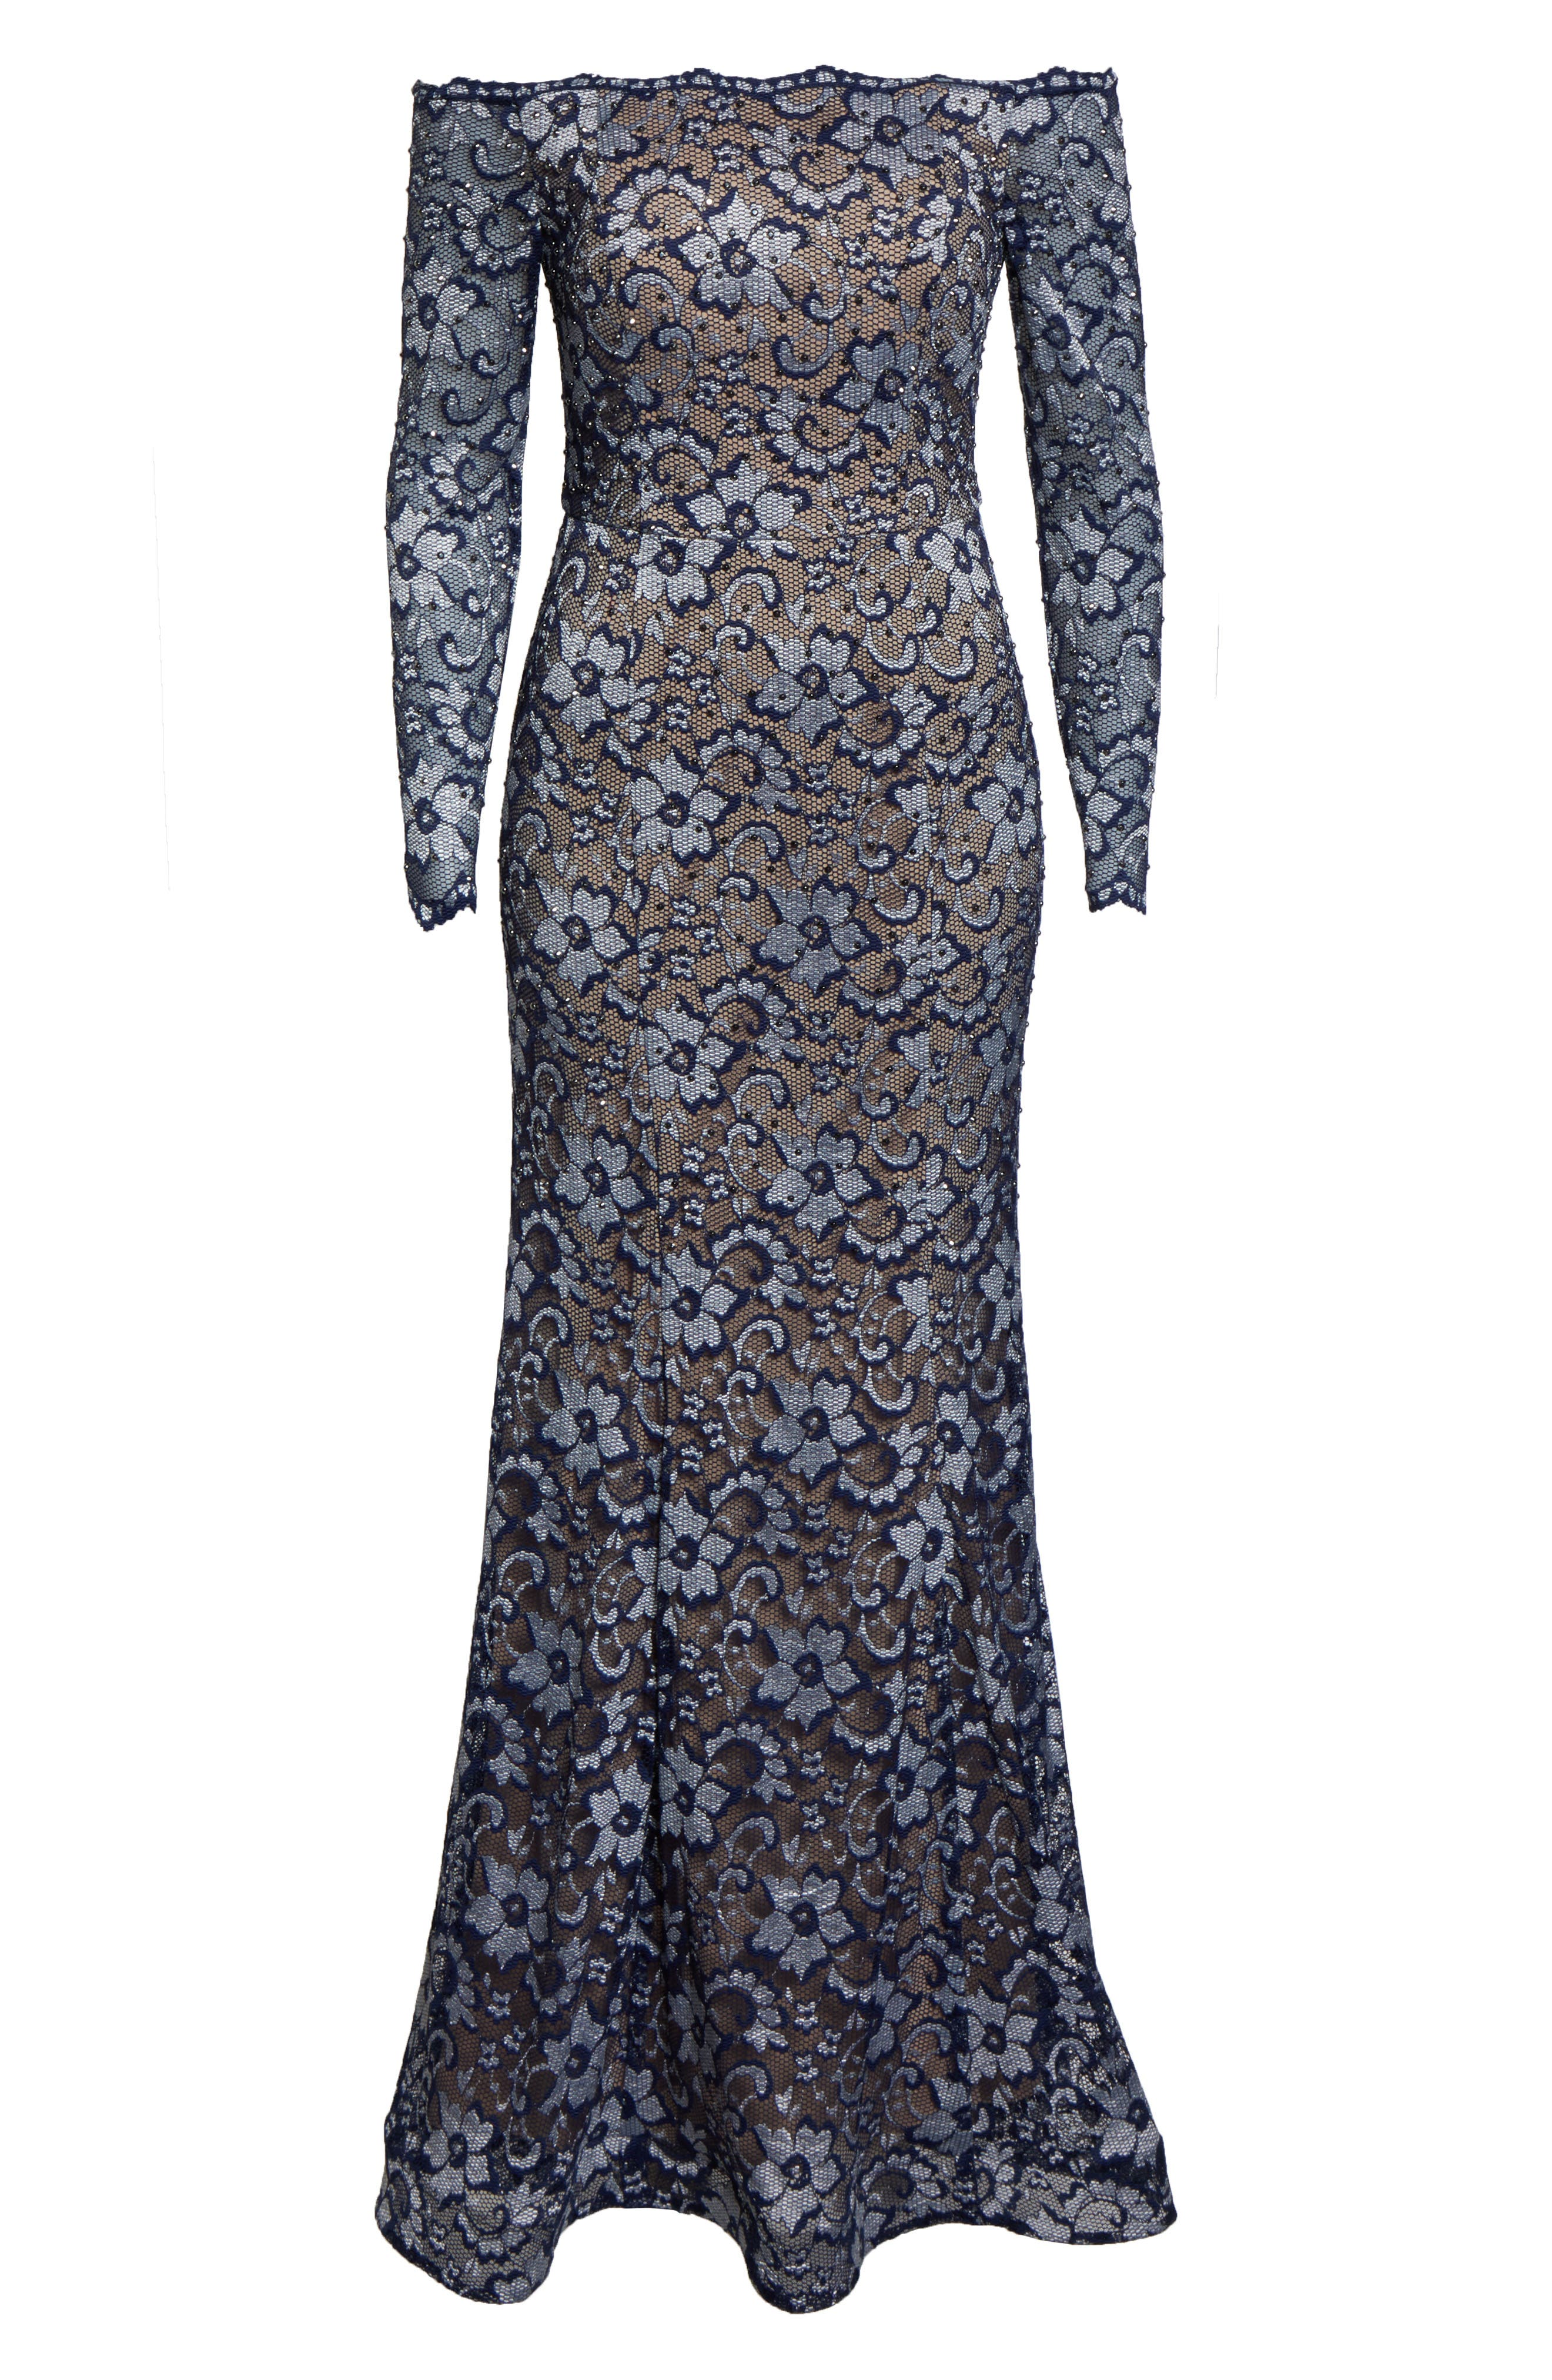 XSCAPE,                             Off the Shoulder Lace Evening Dress,                             Alternate thumbnail 3, color,                             NAVY/ NUDE